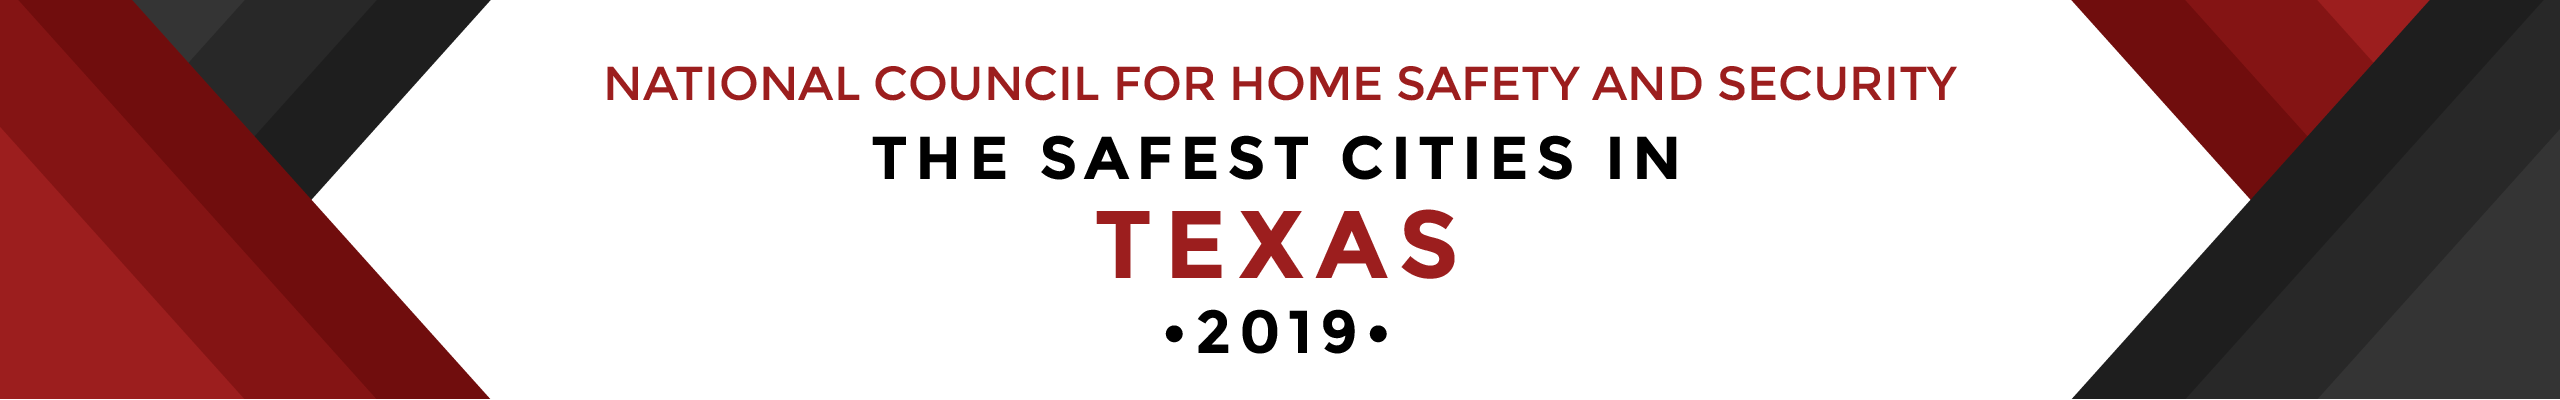 Safest Cities Texas - header